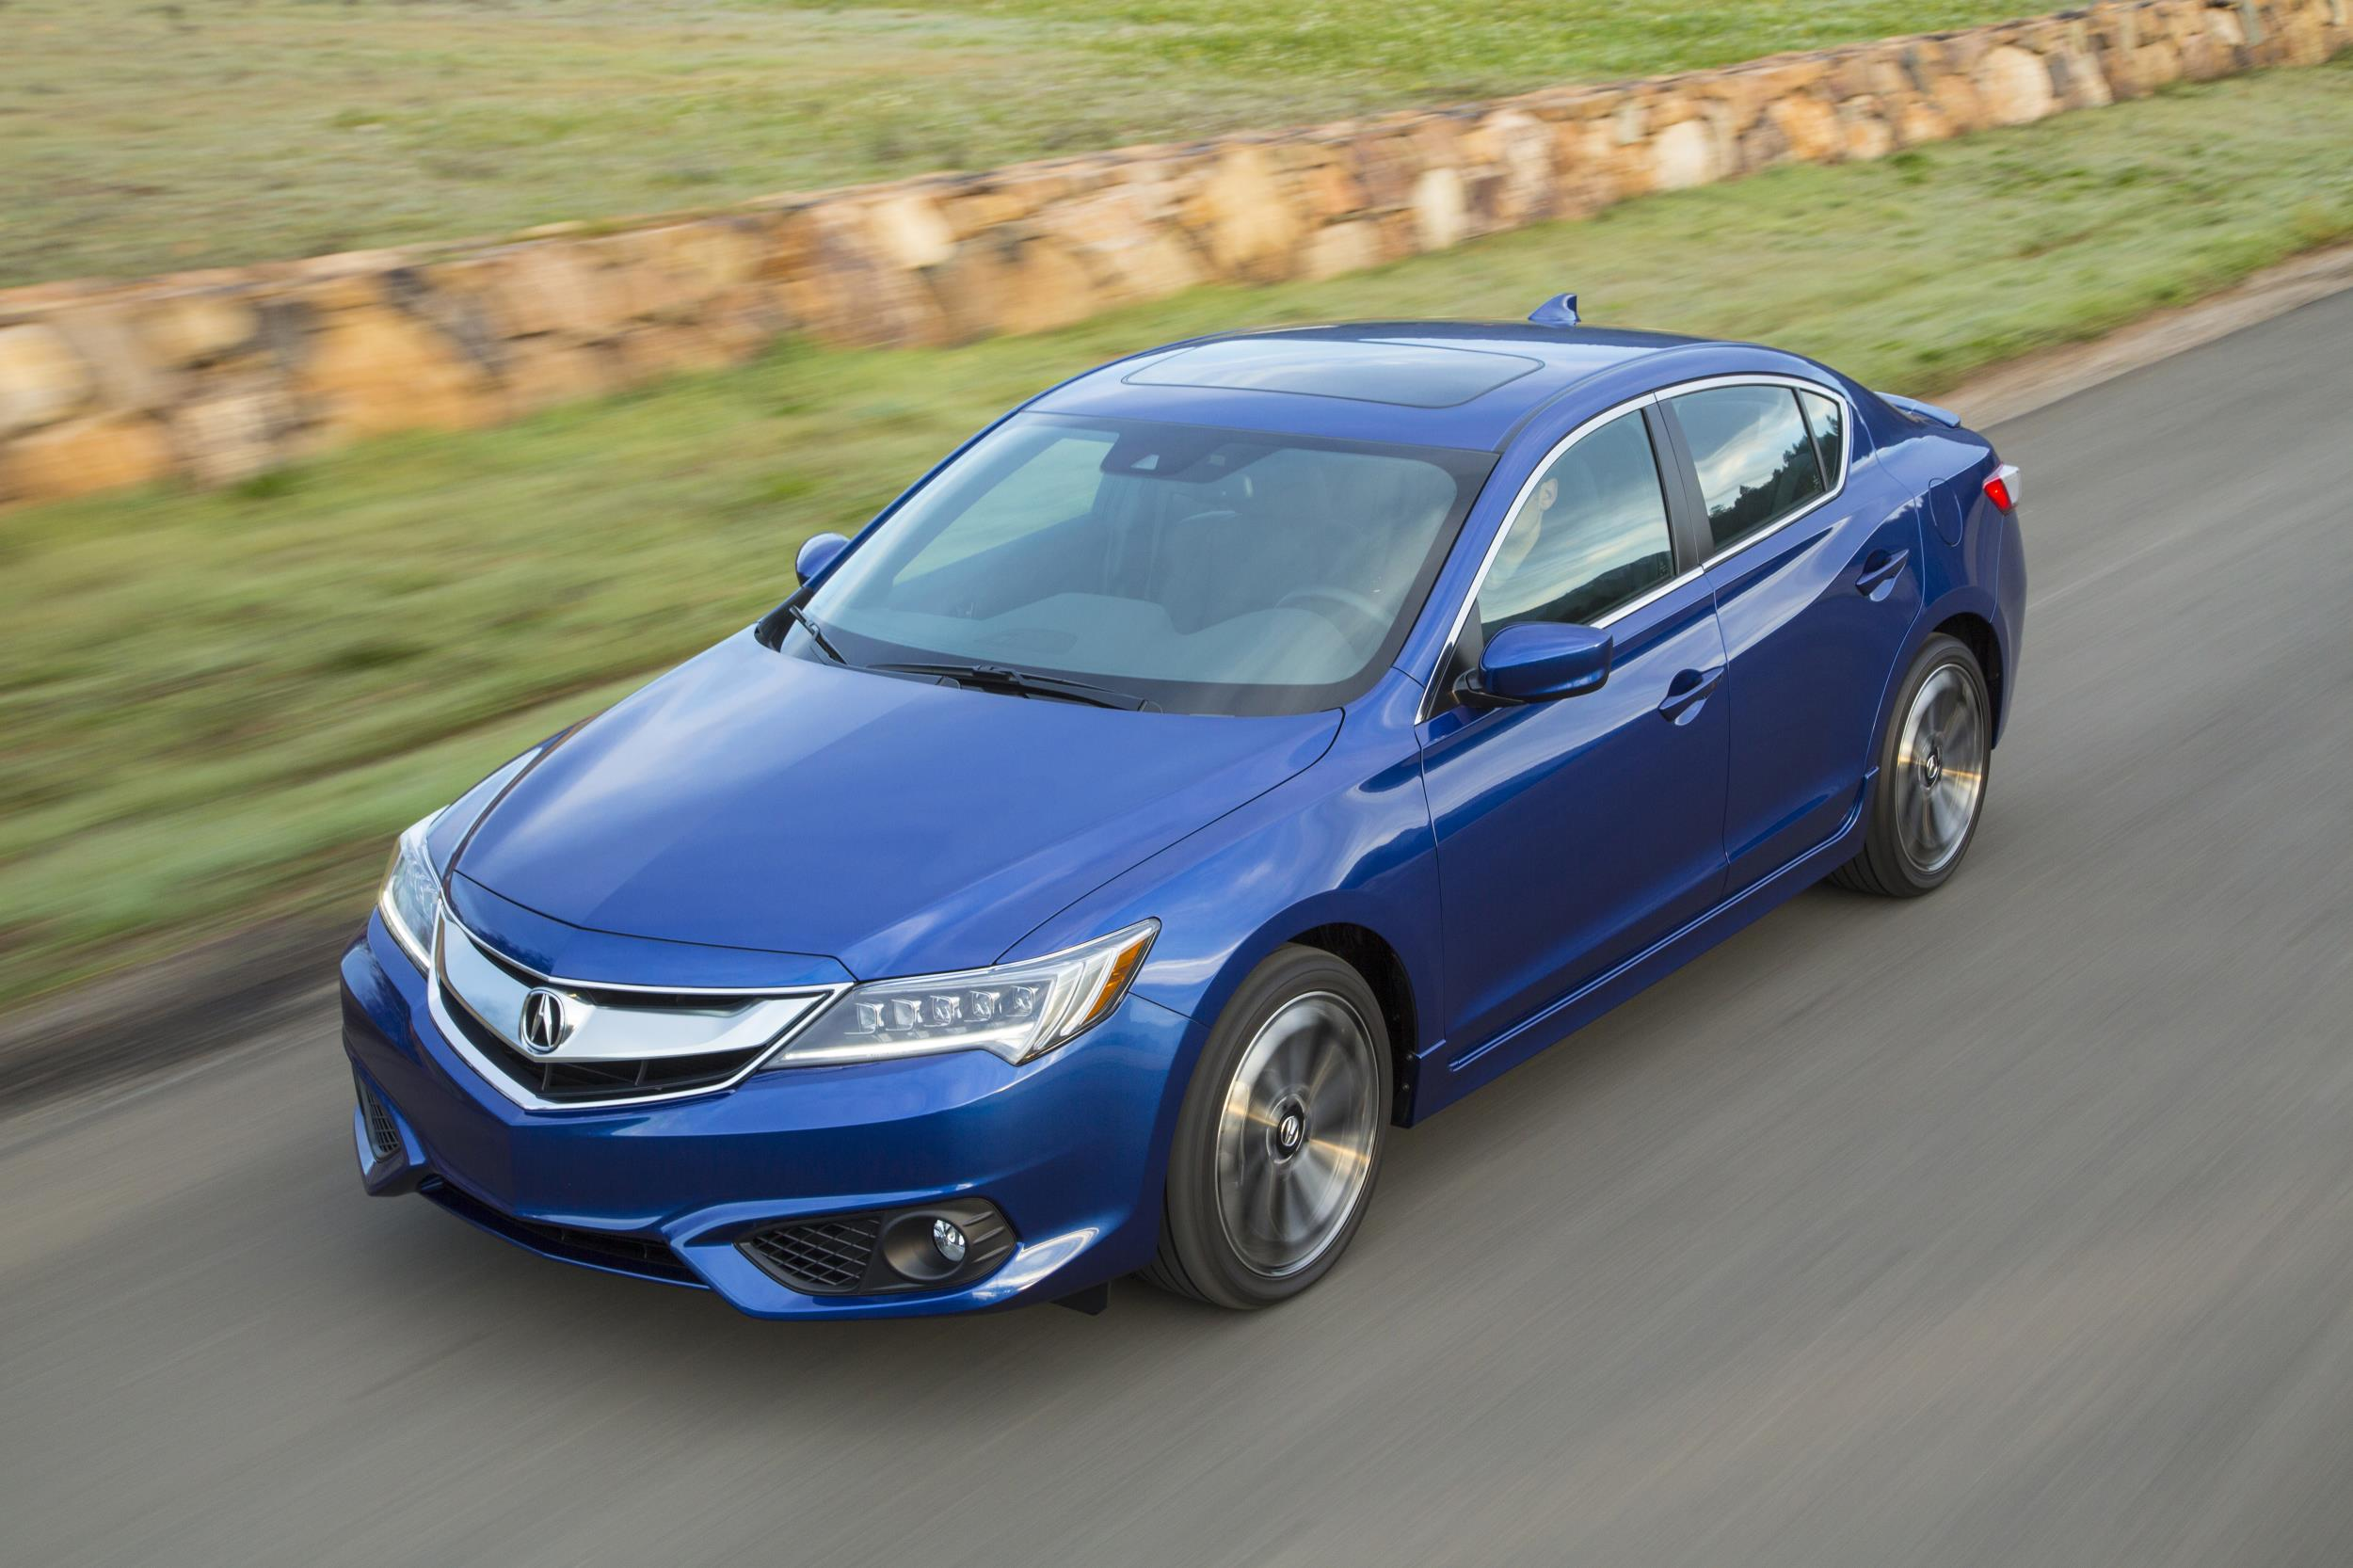 2017 acura ilx introduced costs 90 more than 2016 model year autoevolution. Black Bedroom Furniture Sets. Home Design Ideas